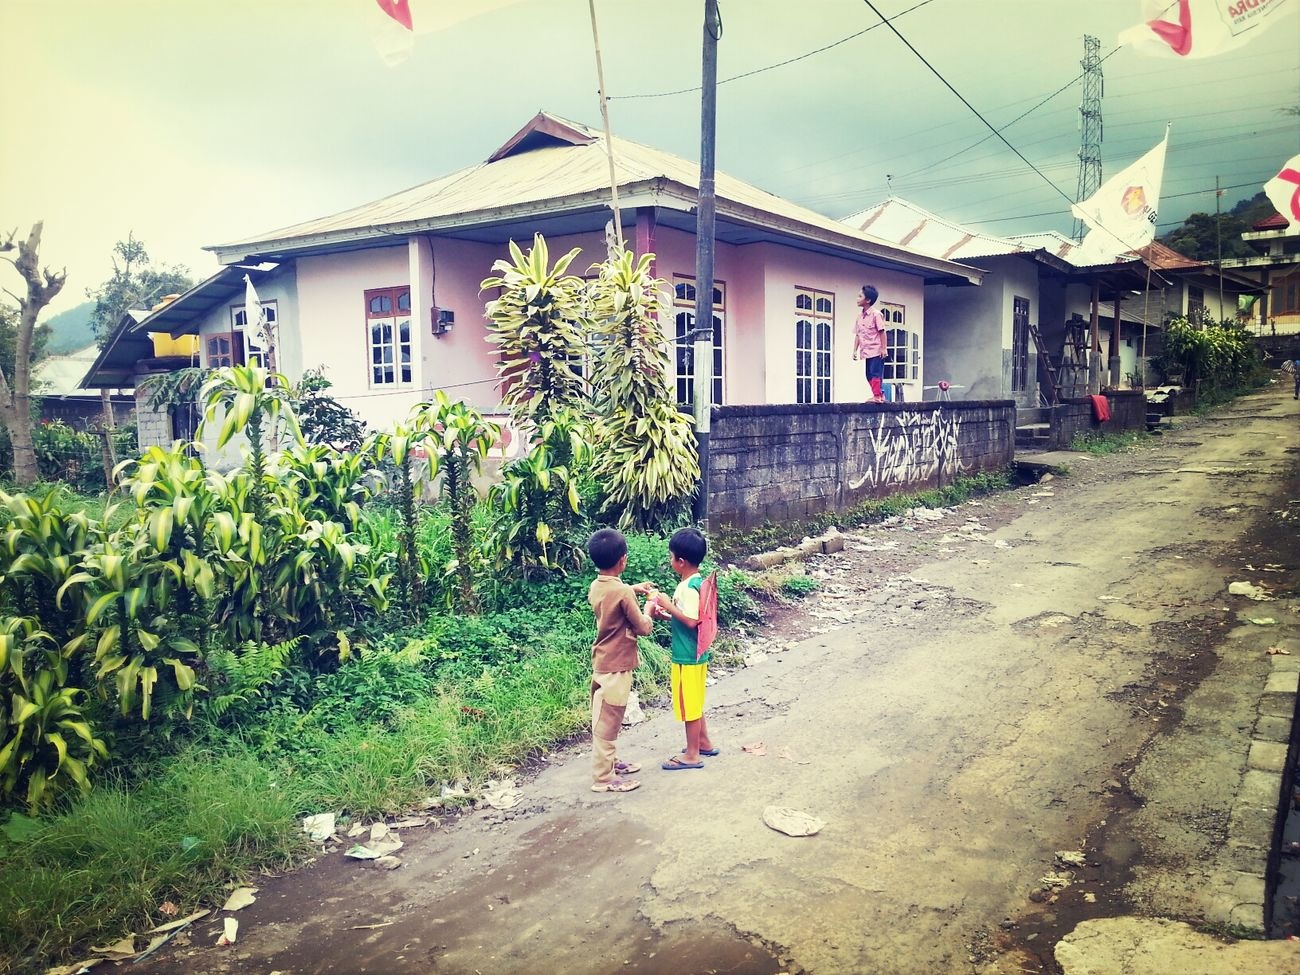 A village in Bali. Eternally grateful for a beautiful experience here with happy kids & lovely homecooked meal. Yet another Travel surprise, thanks to our friend. I Love BALI